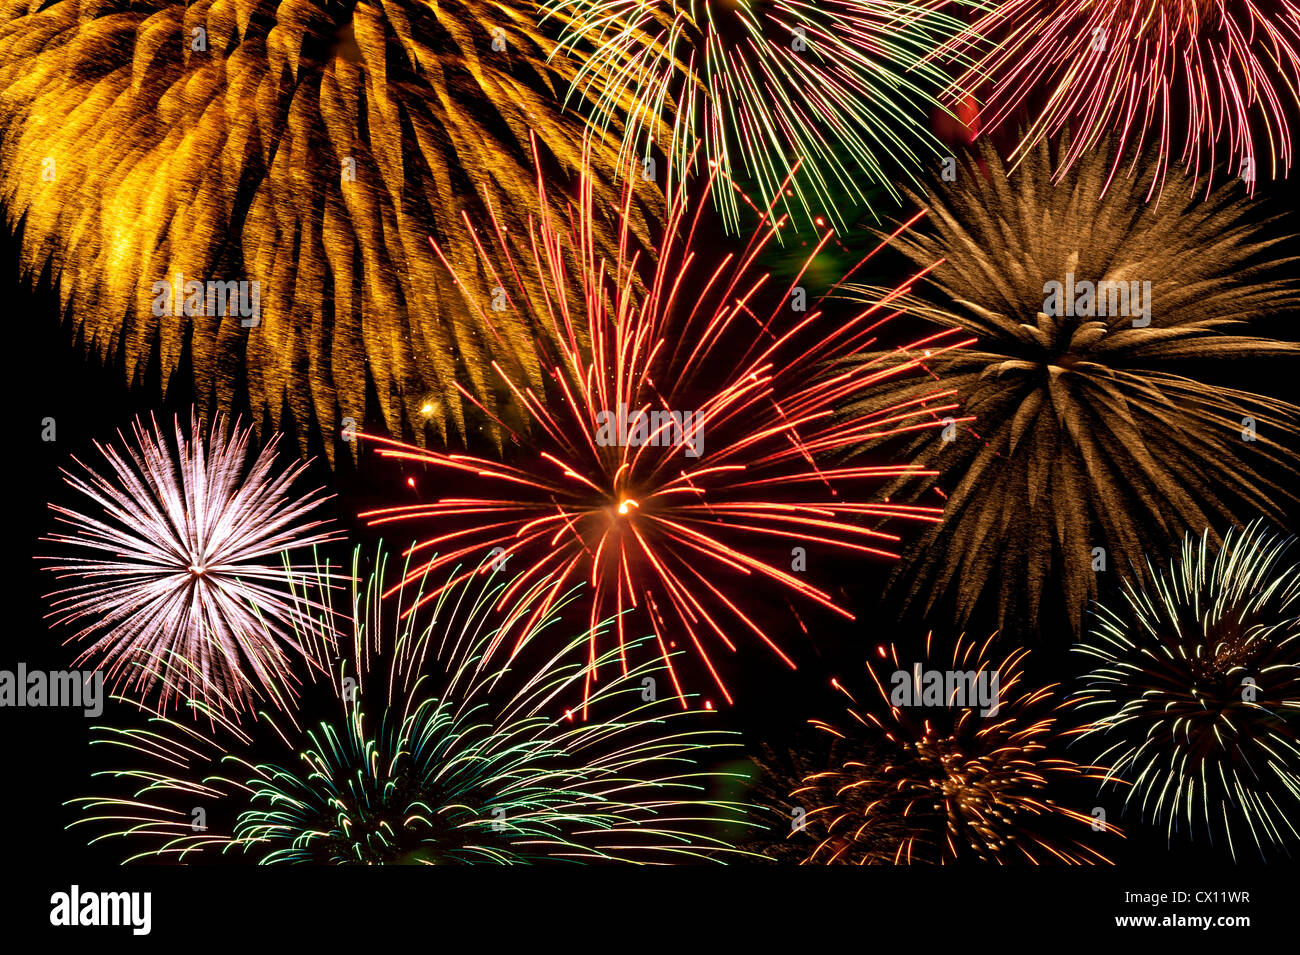 D'artifice Photo Stock